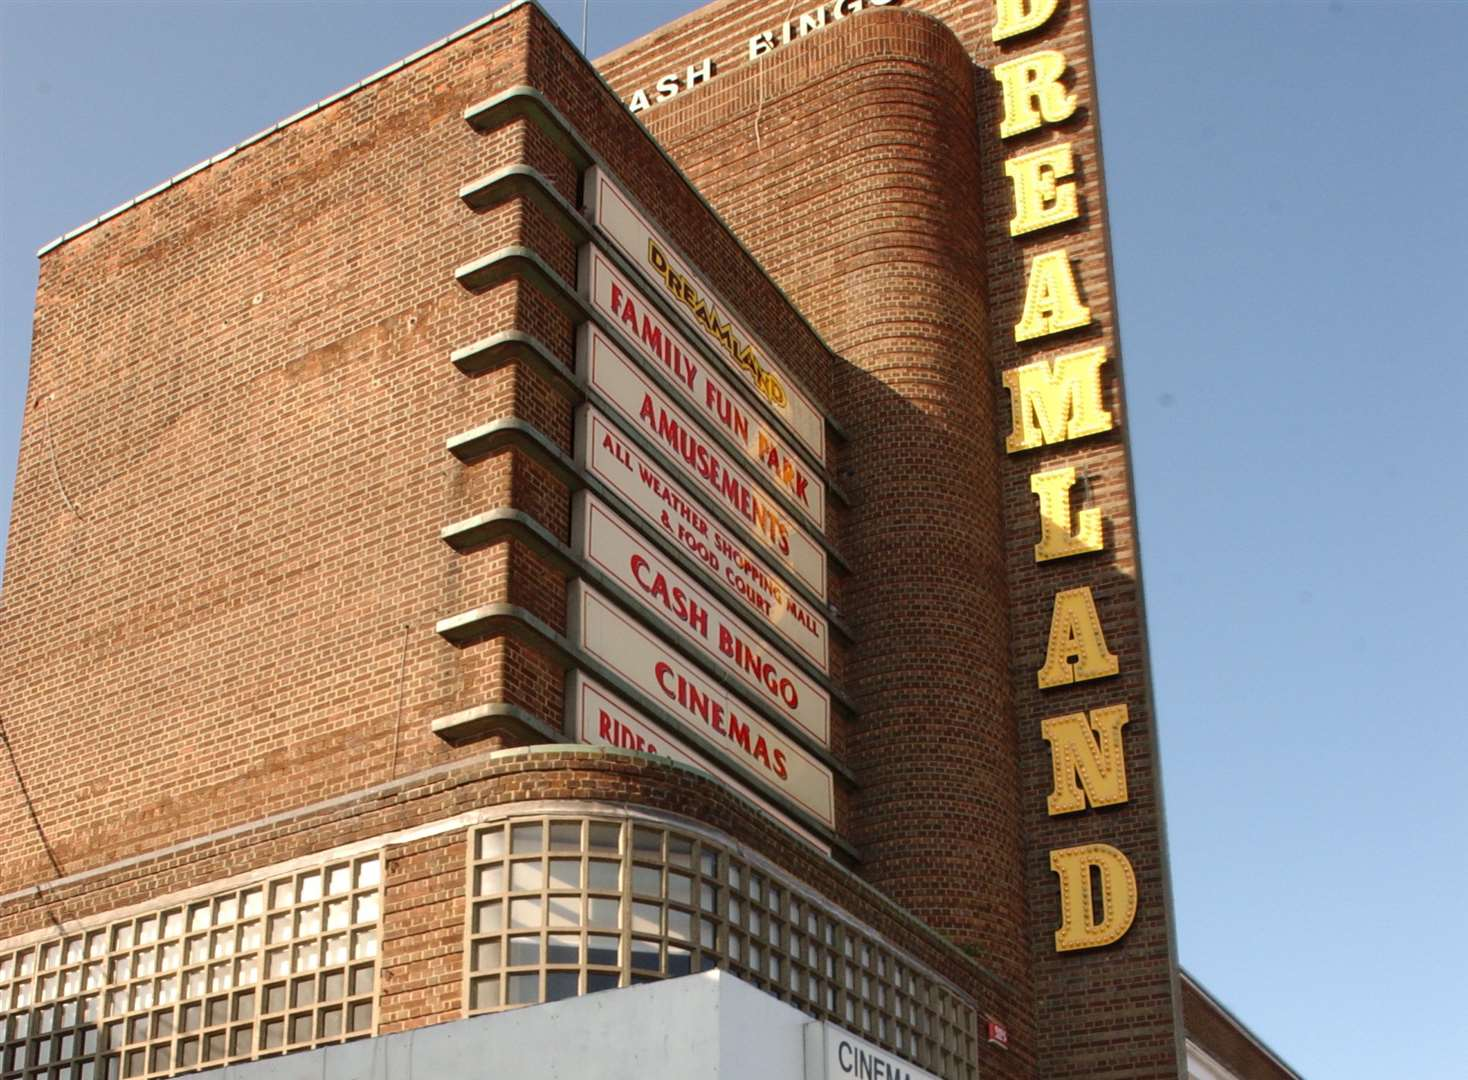 Dreamland legal appeal dismissed